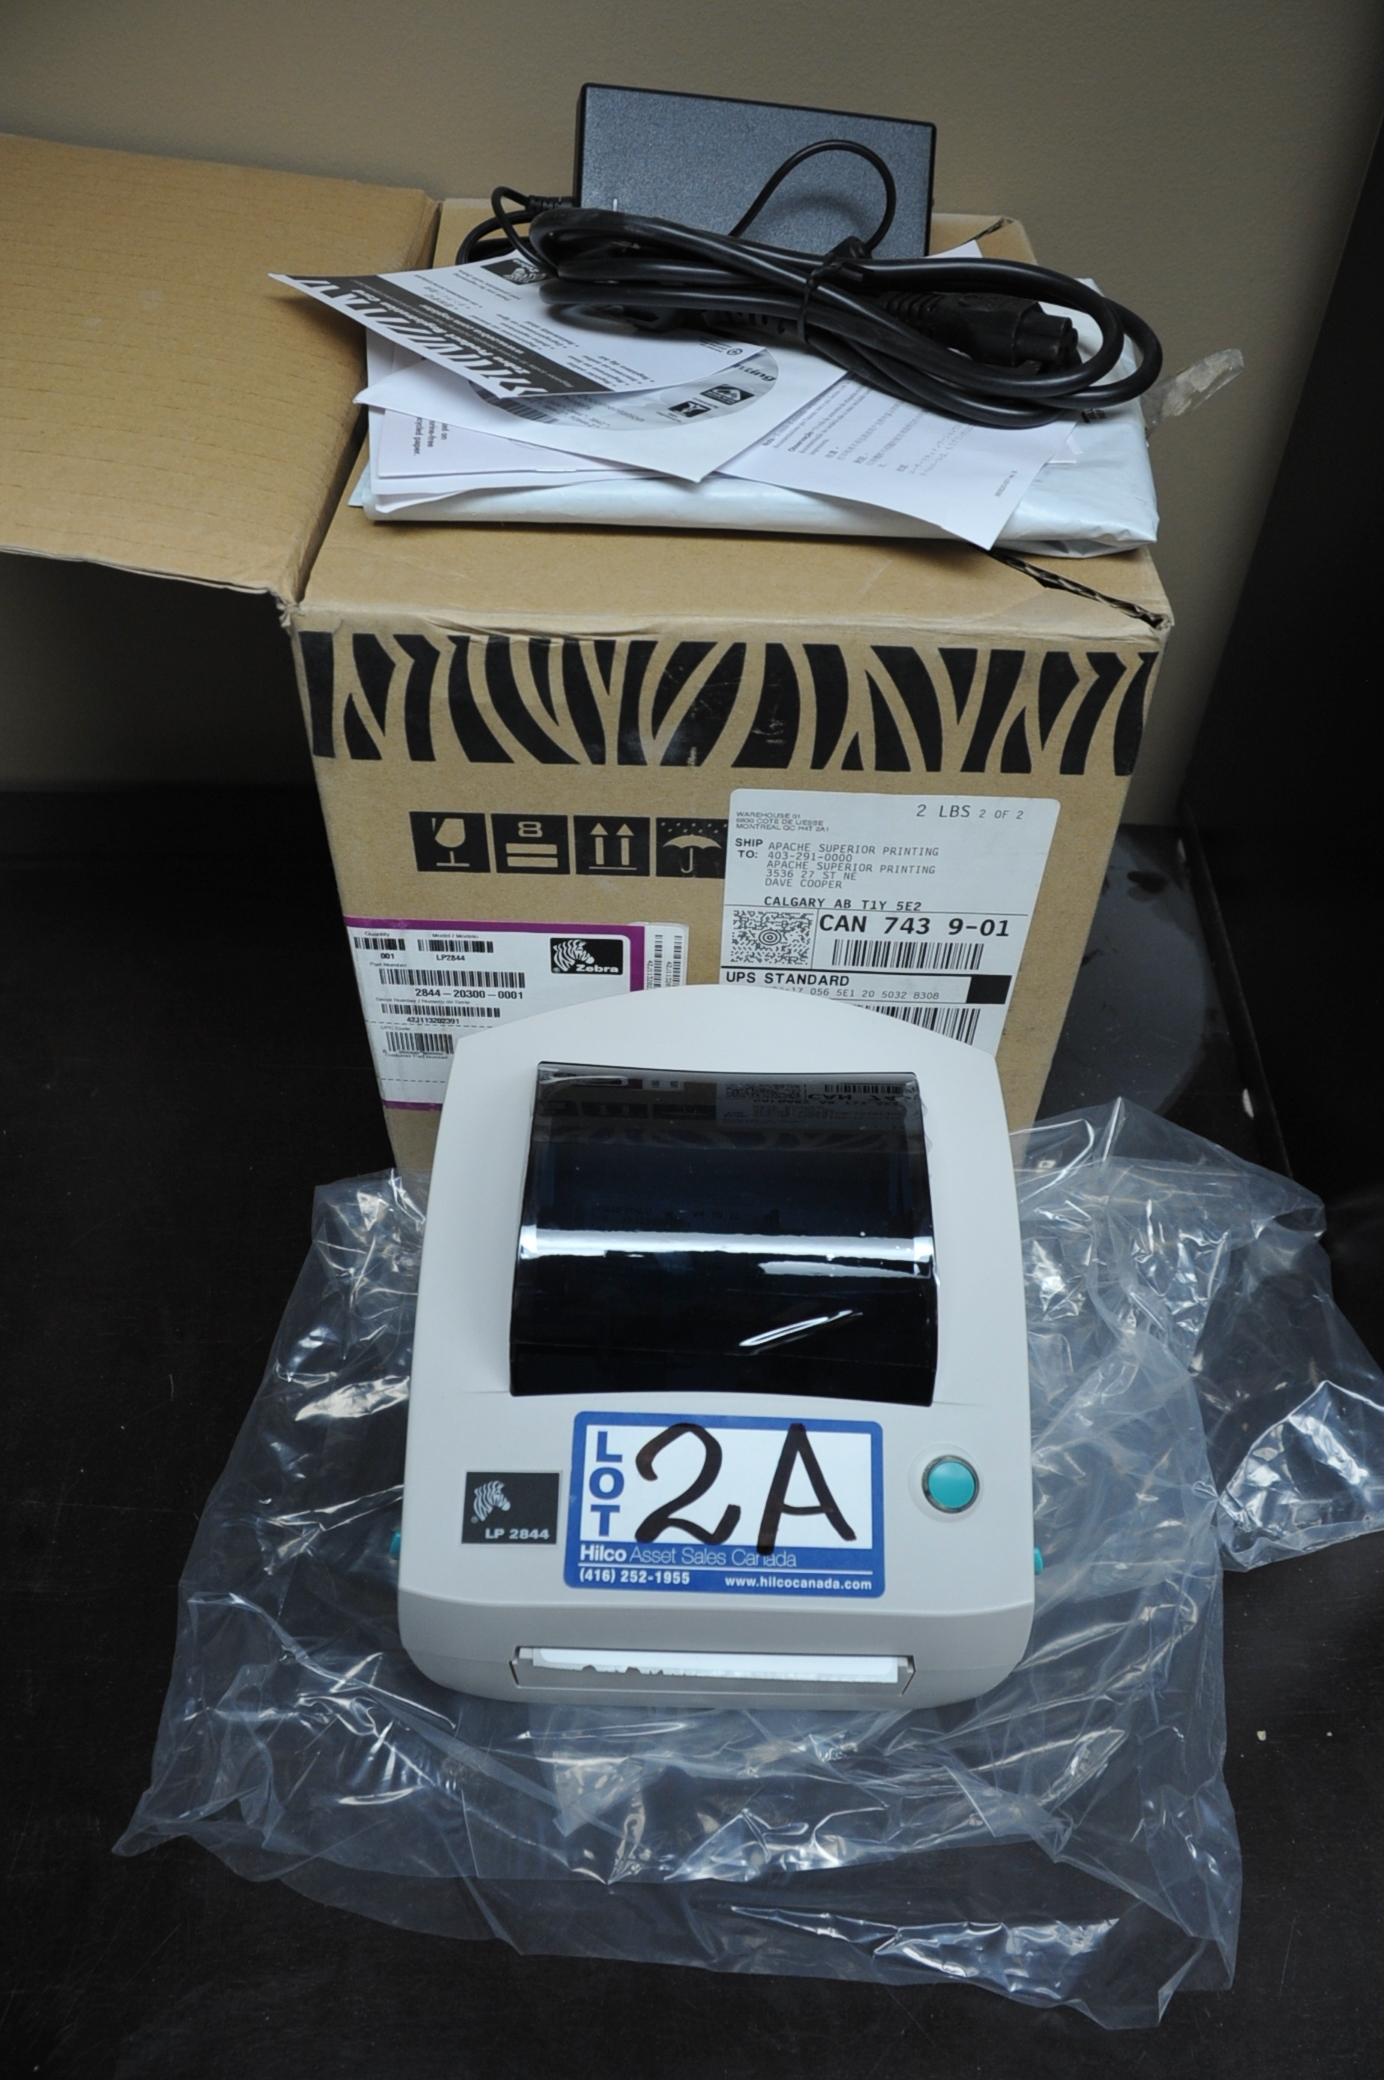 Zebra Model LP2844 Label Printer